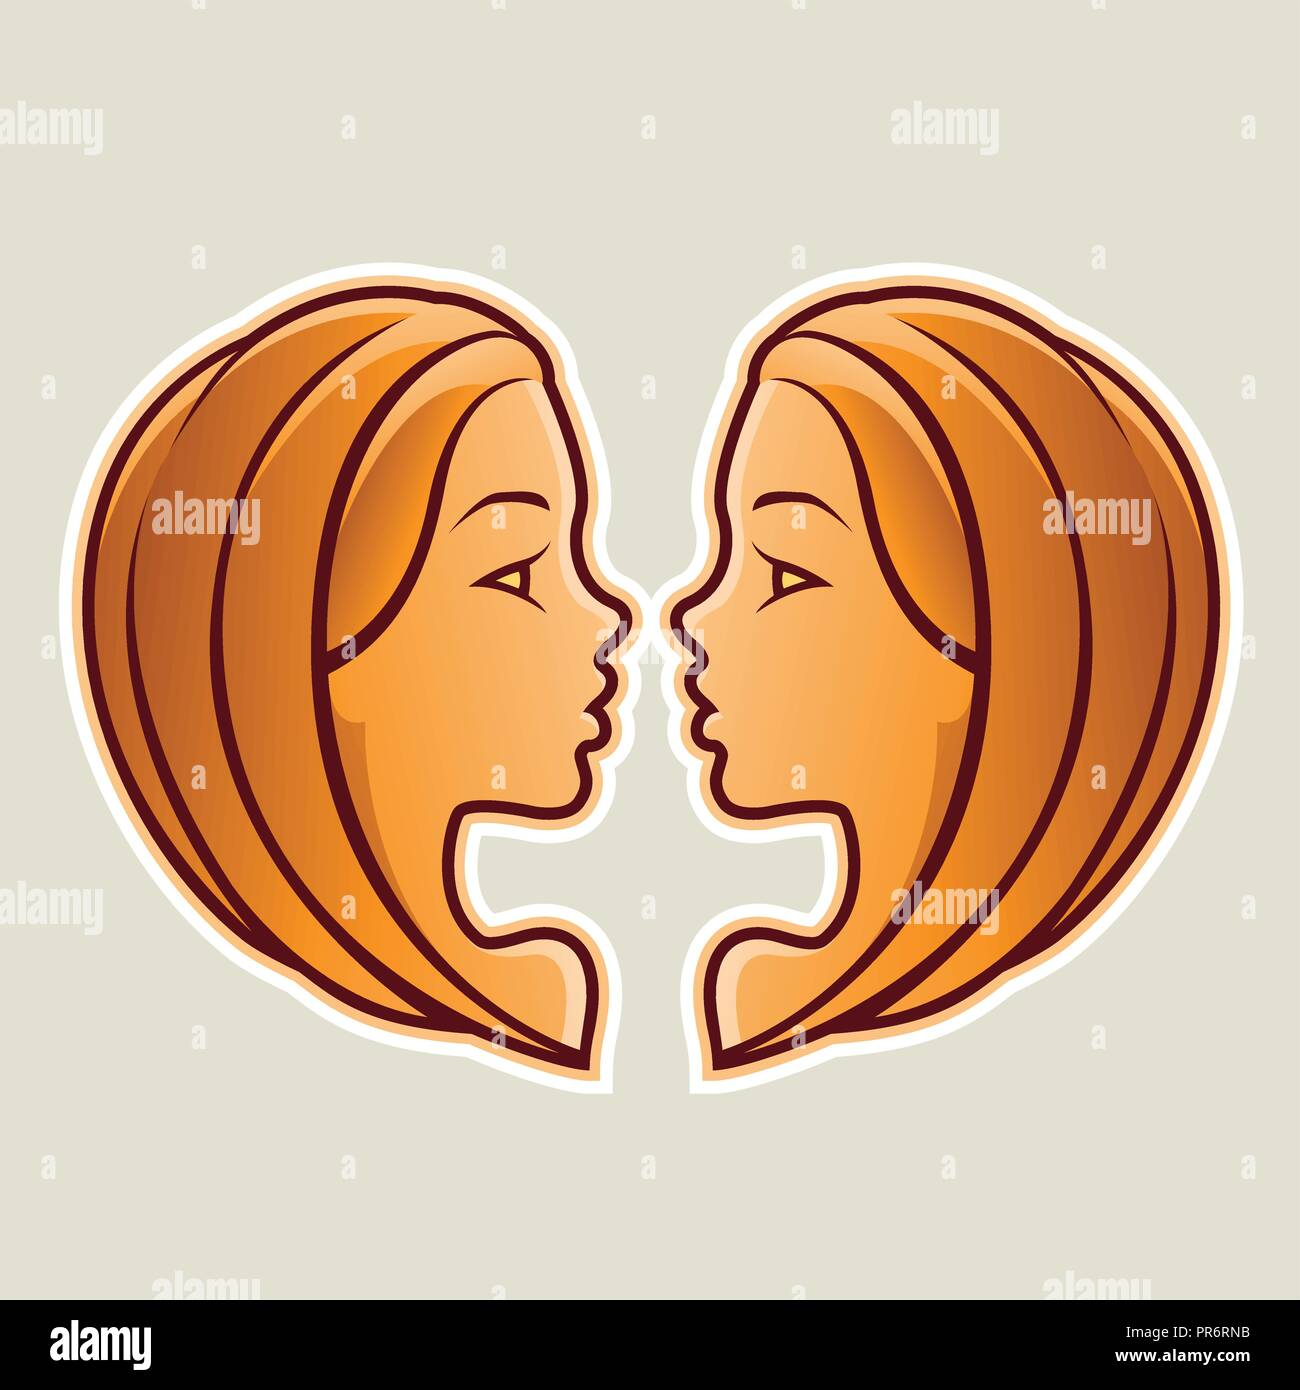 Vector Illustration of Orange Gemini or Twins Icon isolated on a White Background Stock Vector